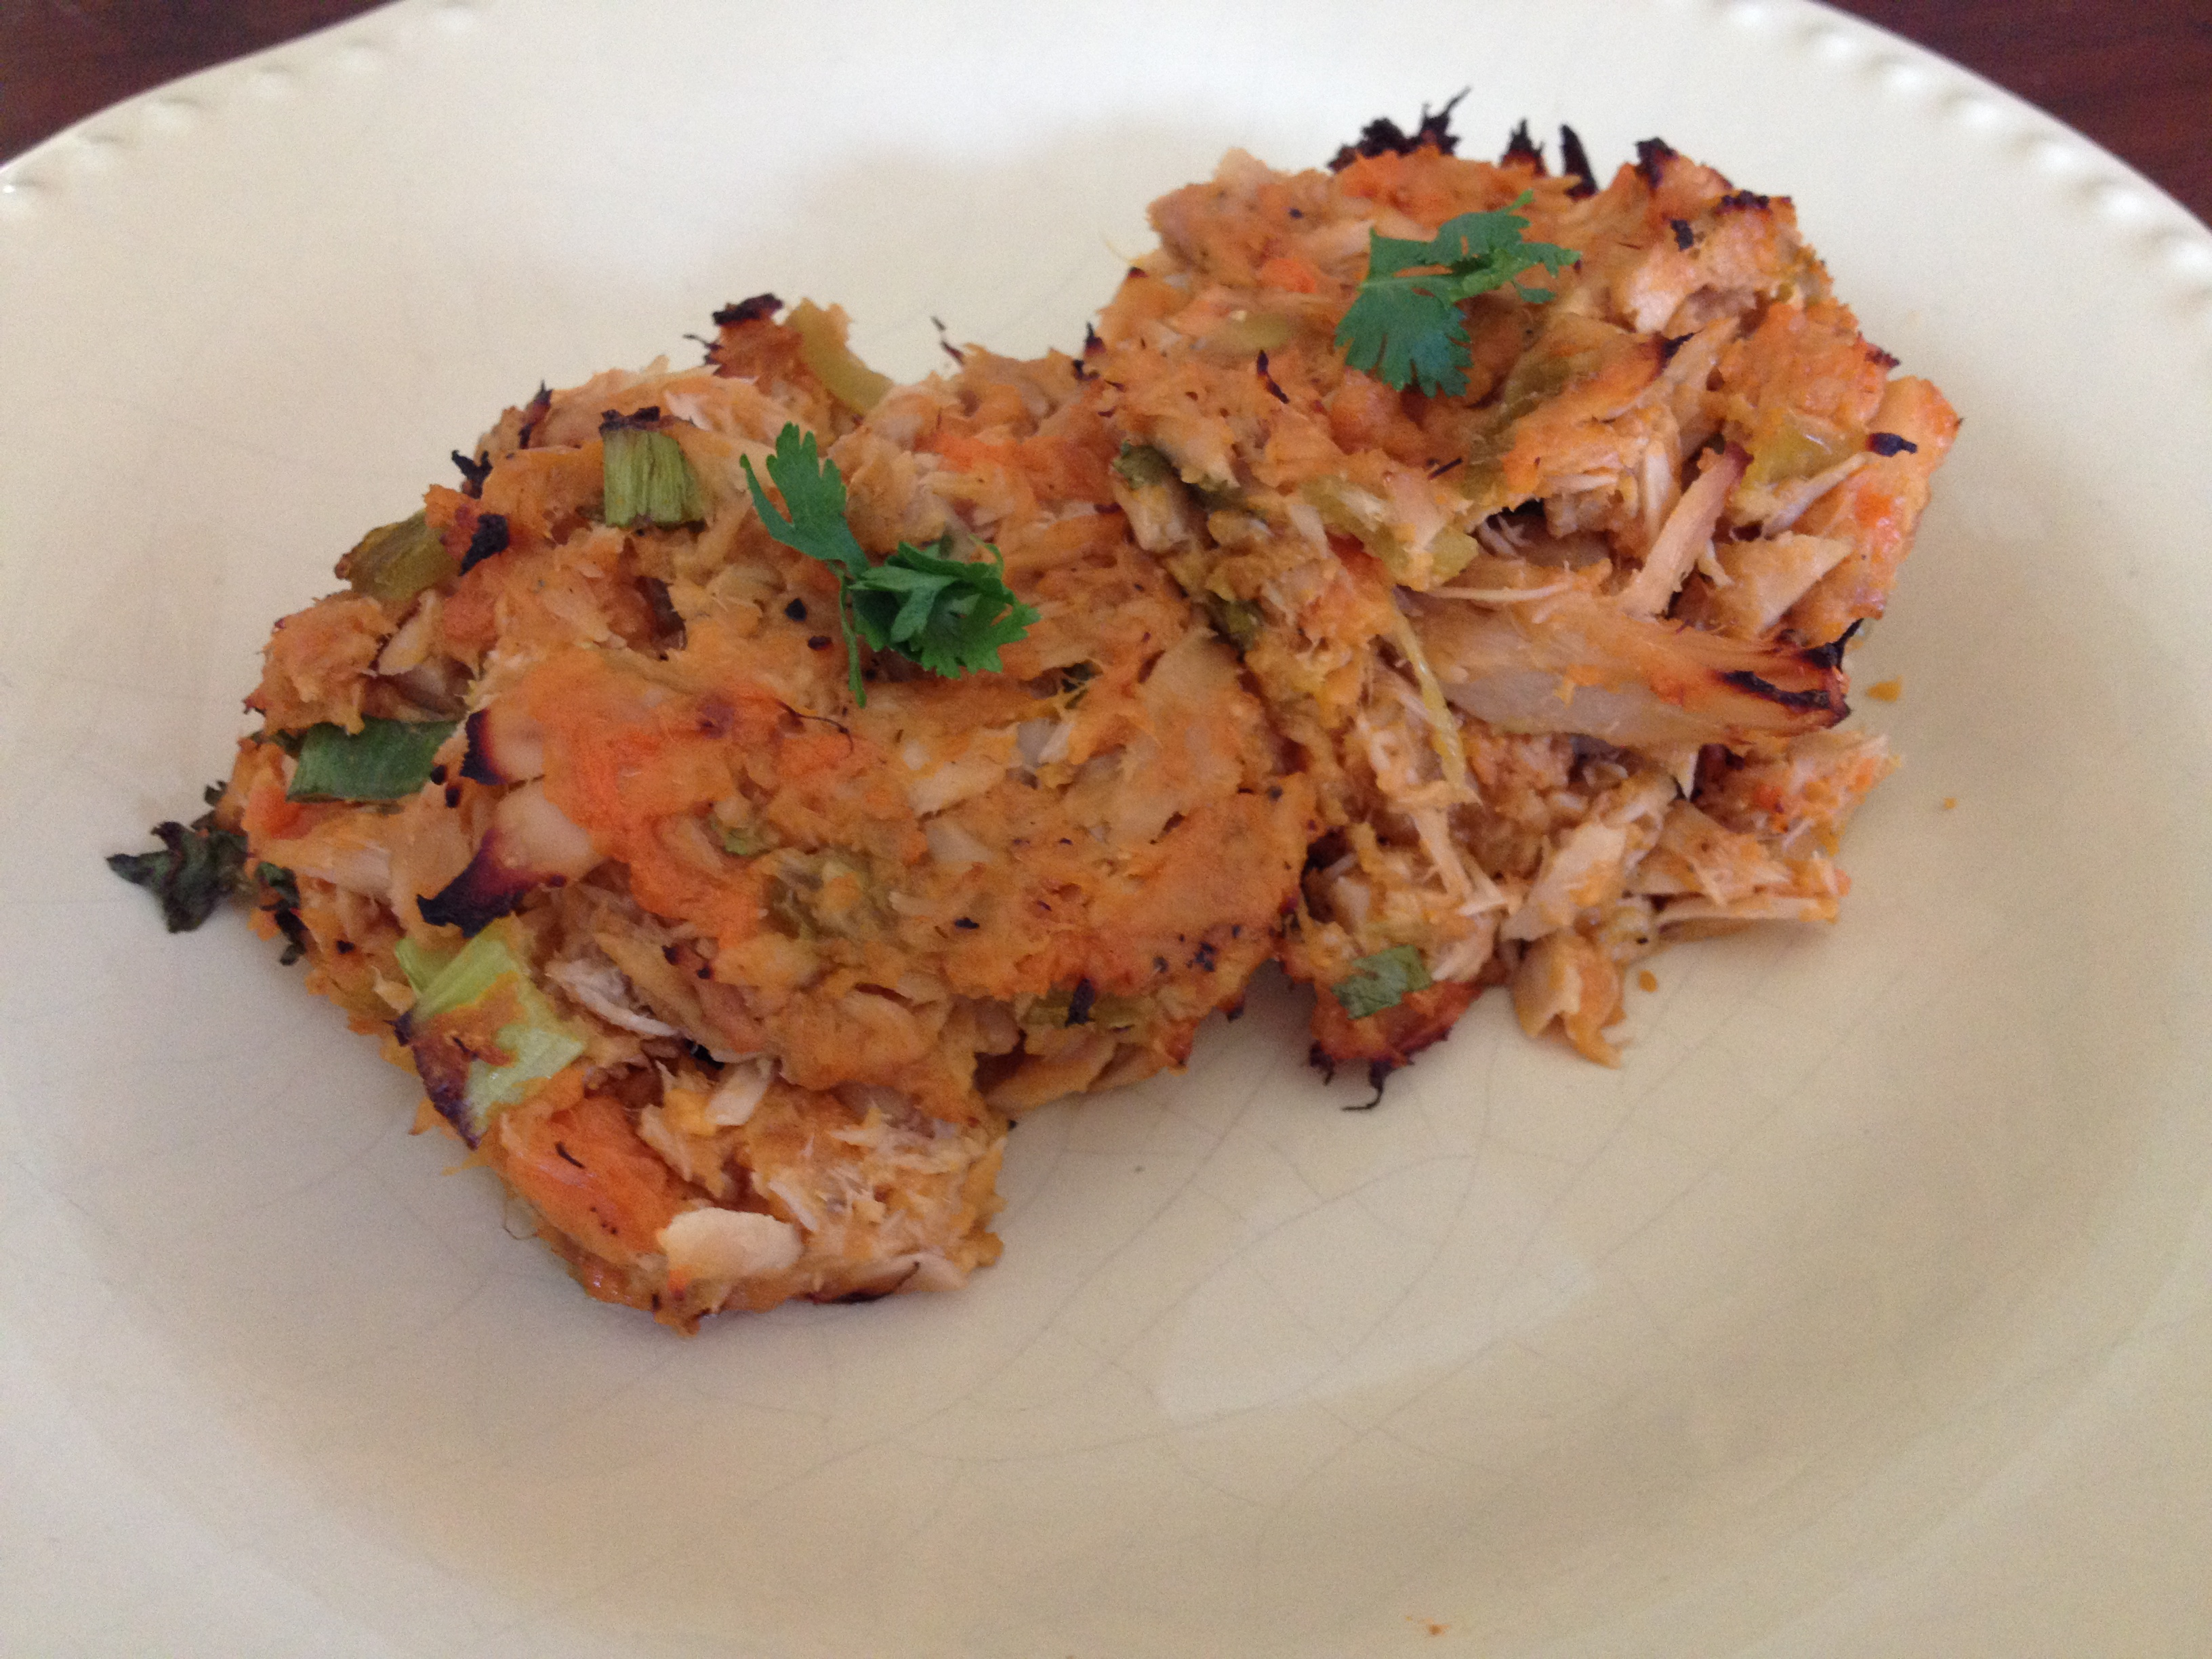 Spicy Tuna Cakes – Adapted from Nom Nom Paleo